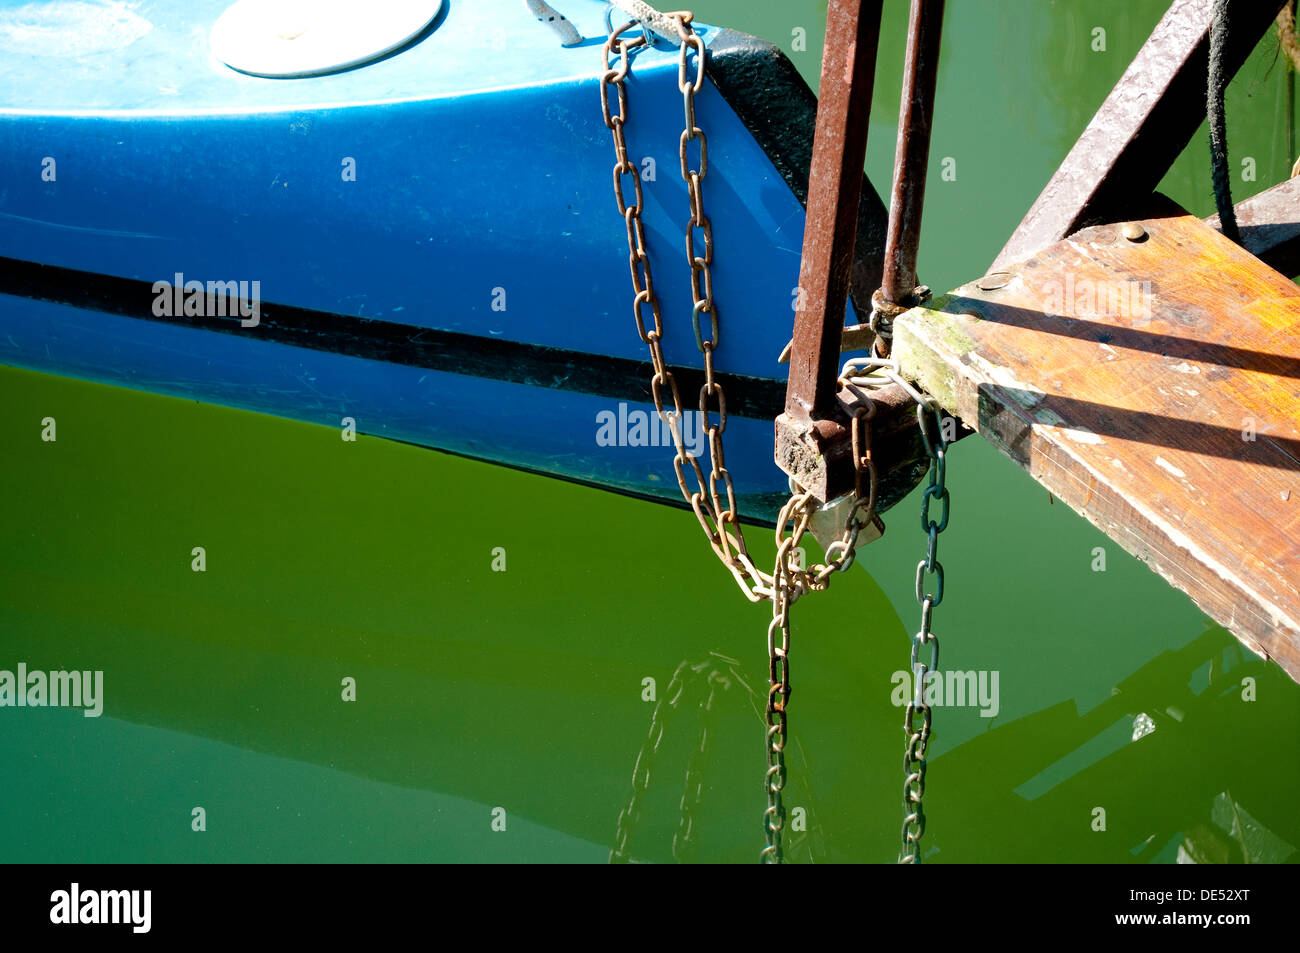 Canoe tied to a step, River Mreznica, Central Croatia - Stock Image